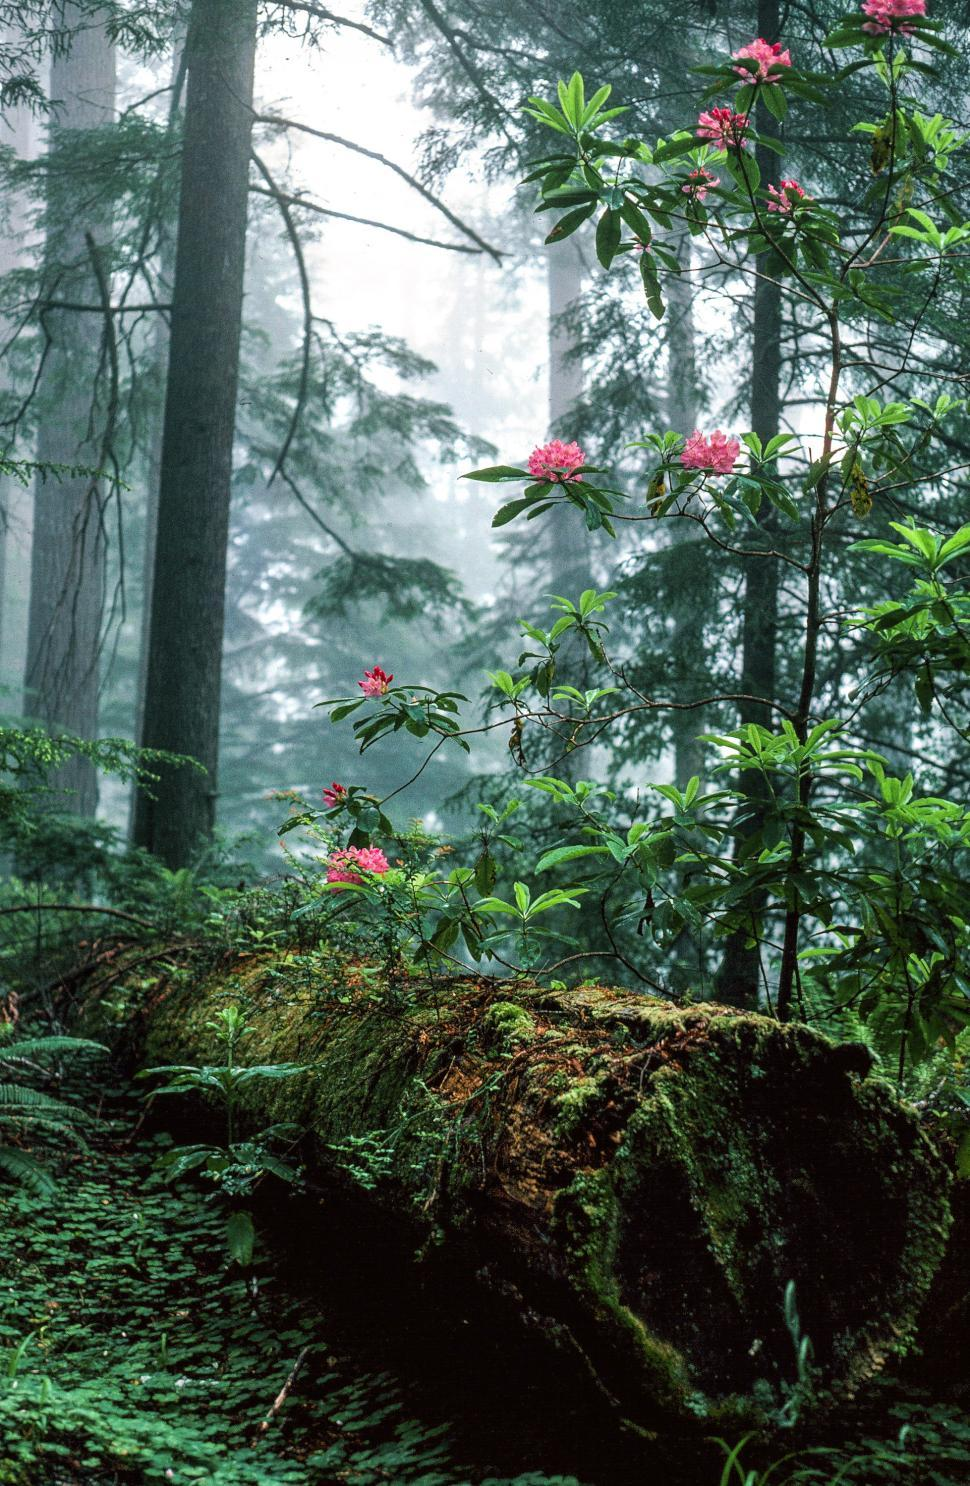 Download Free Stock HD Photo of Rhododendron flowers blooming at Redwood Grove Online